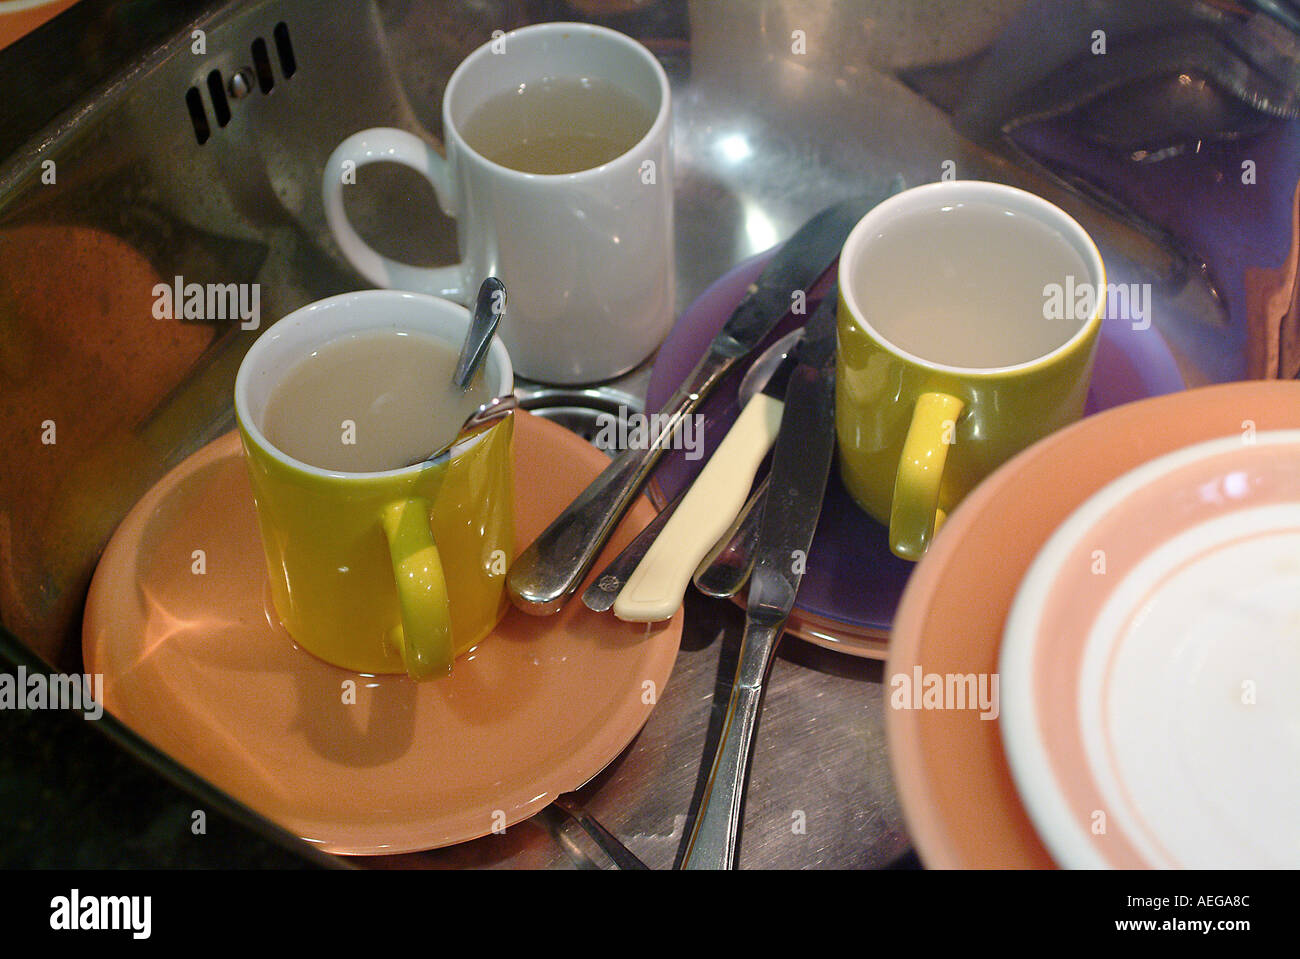 Kitchen Sink With Dishes sweet home home house kitchen sink glasses dishes silverware cups